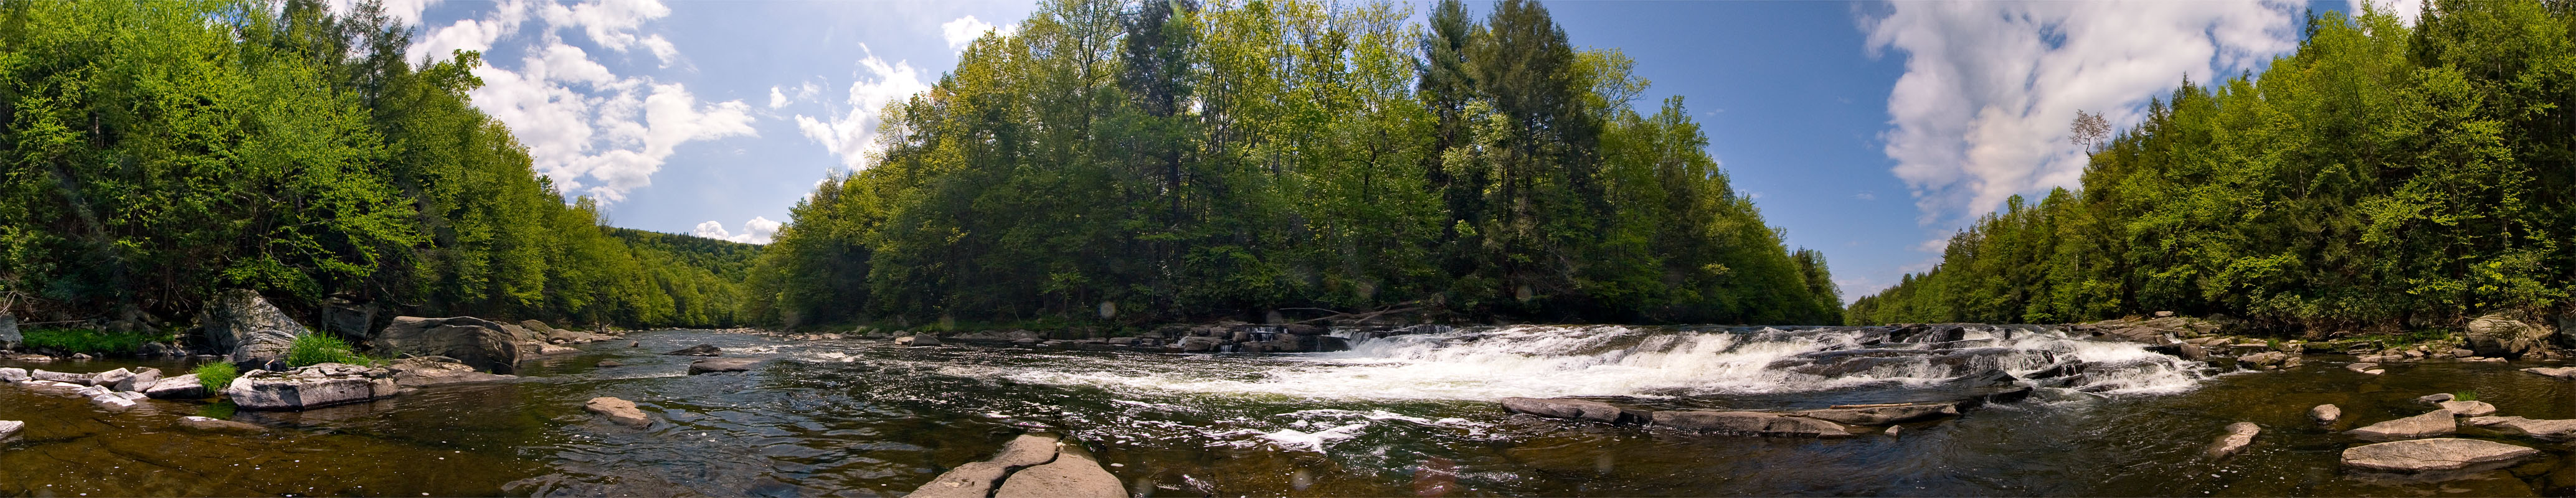 You've really got to see this one full-size to enjoy it.  It's my first attempt at a 360 degree panorama stitched together with the latest and greatest version of Adobe Photoshop.   From the Neversink River in New York.